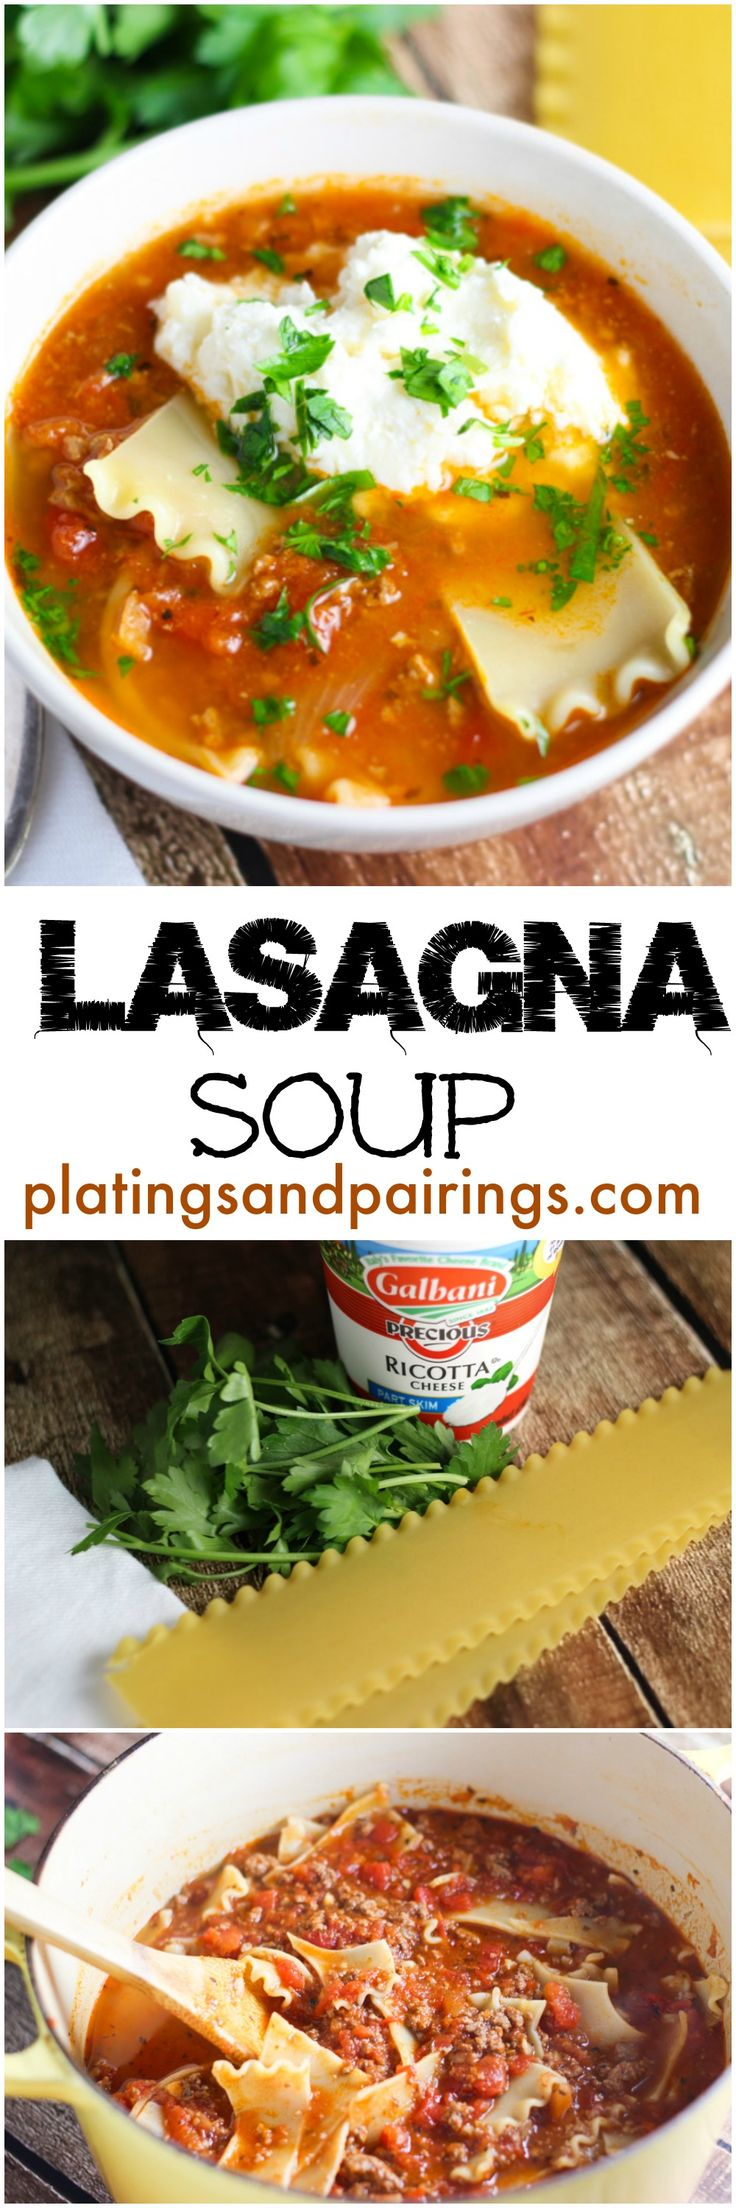 So much EASIER than Lasagna and BETTER! platingsandpairings.com